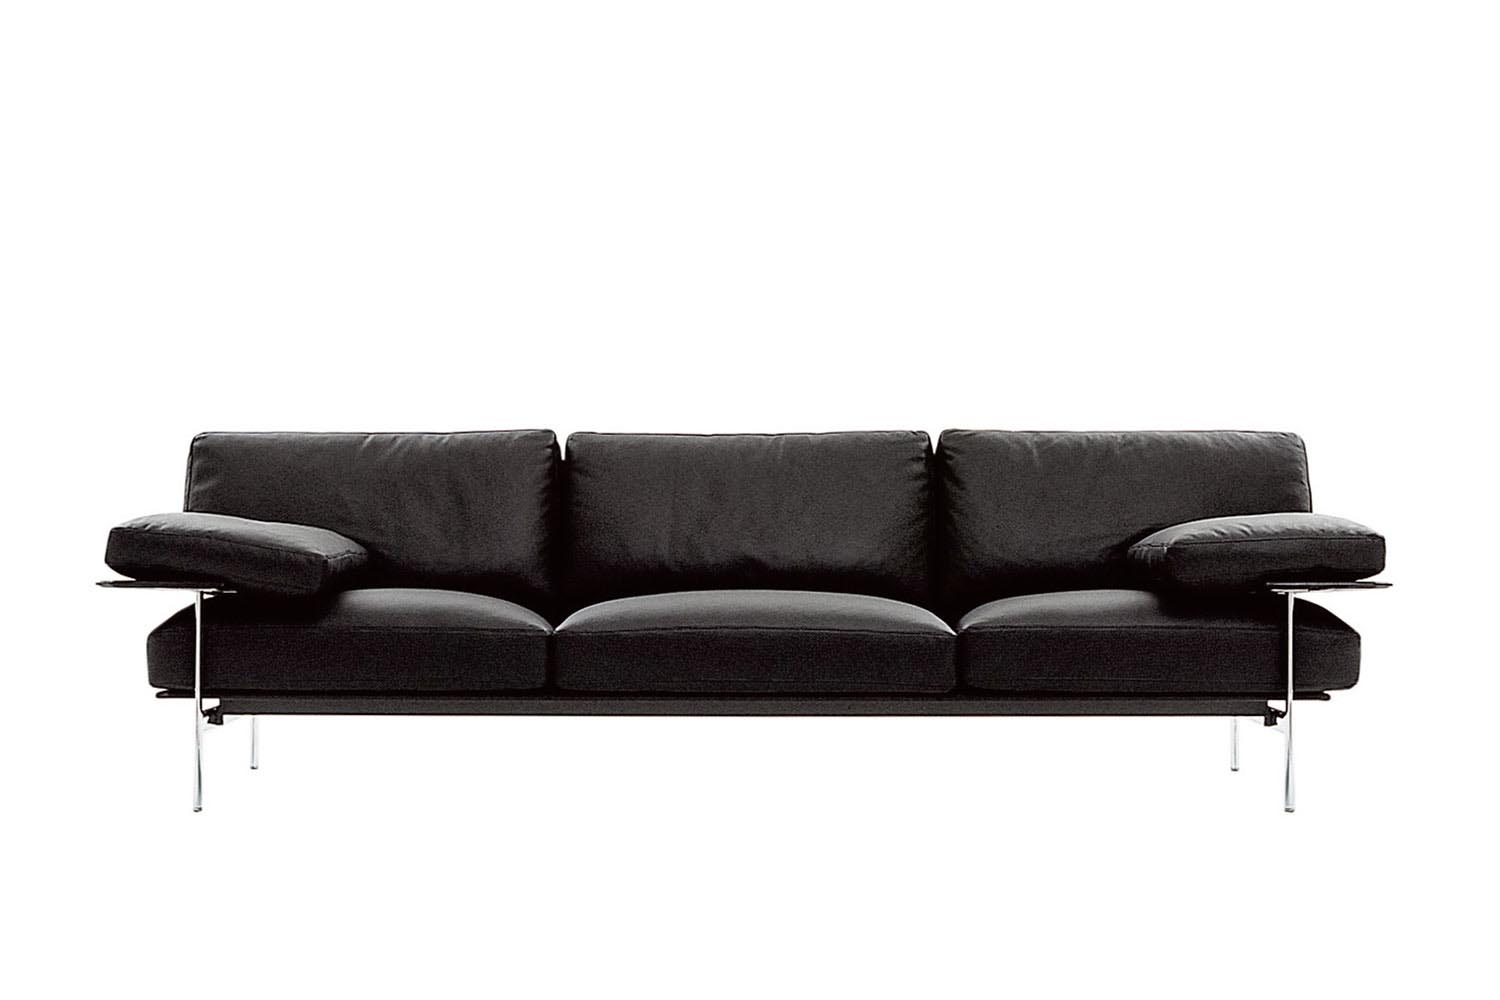 contemporary leather sofas sydney pottery barn deep sectional sofa diesis by antonio citterio and paolo nava for b&b ...